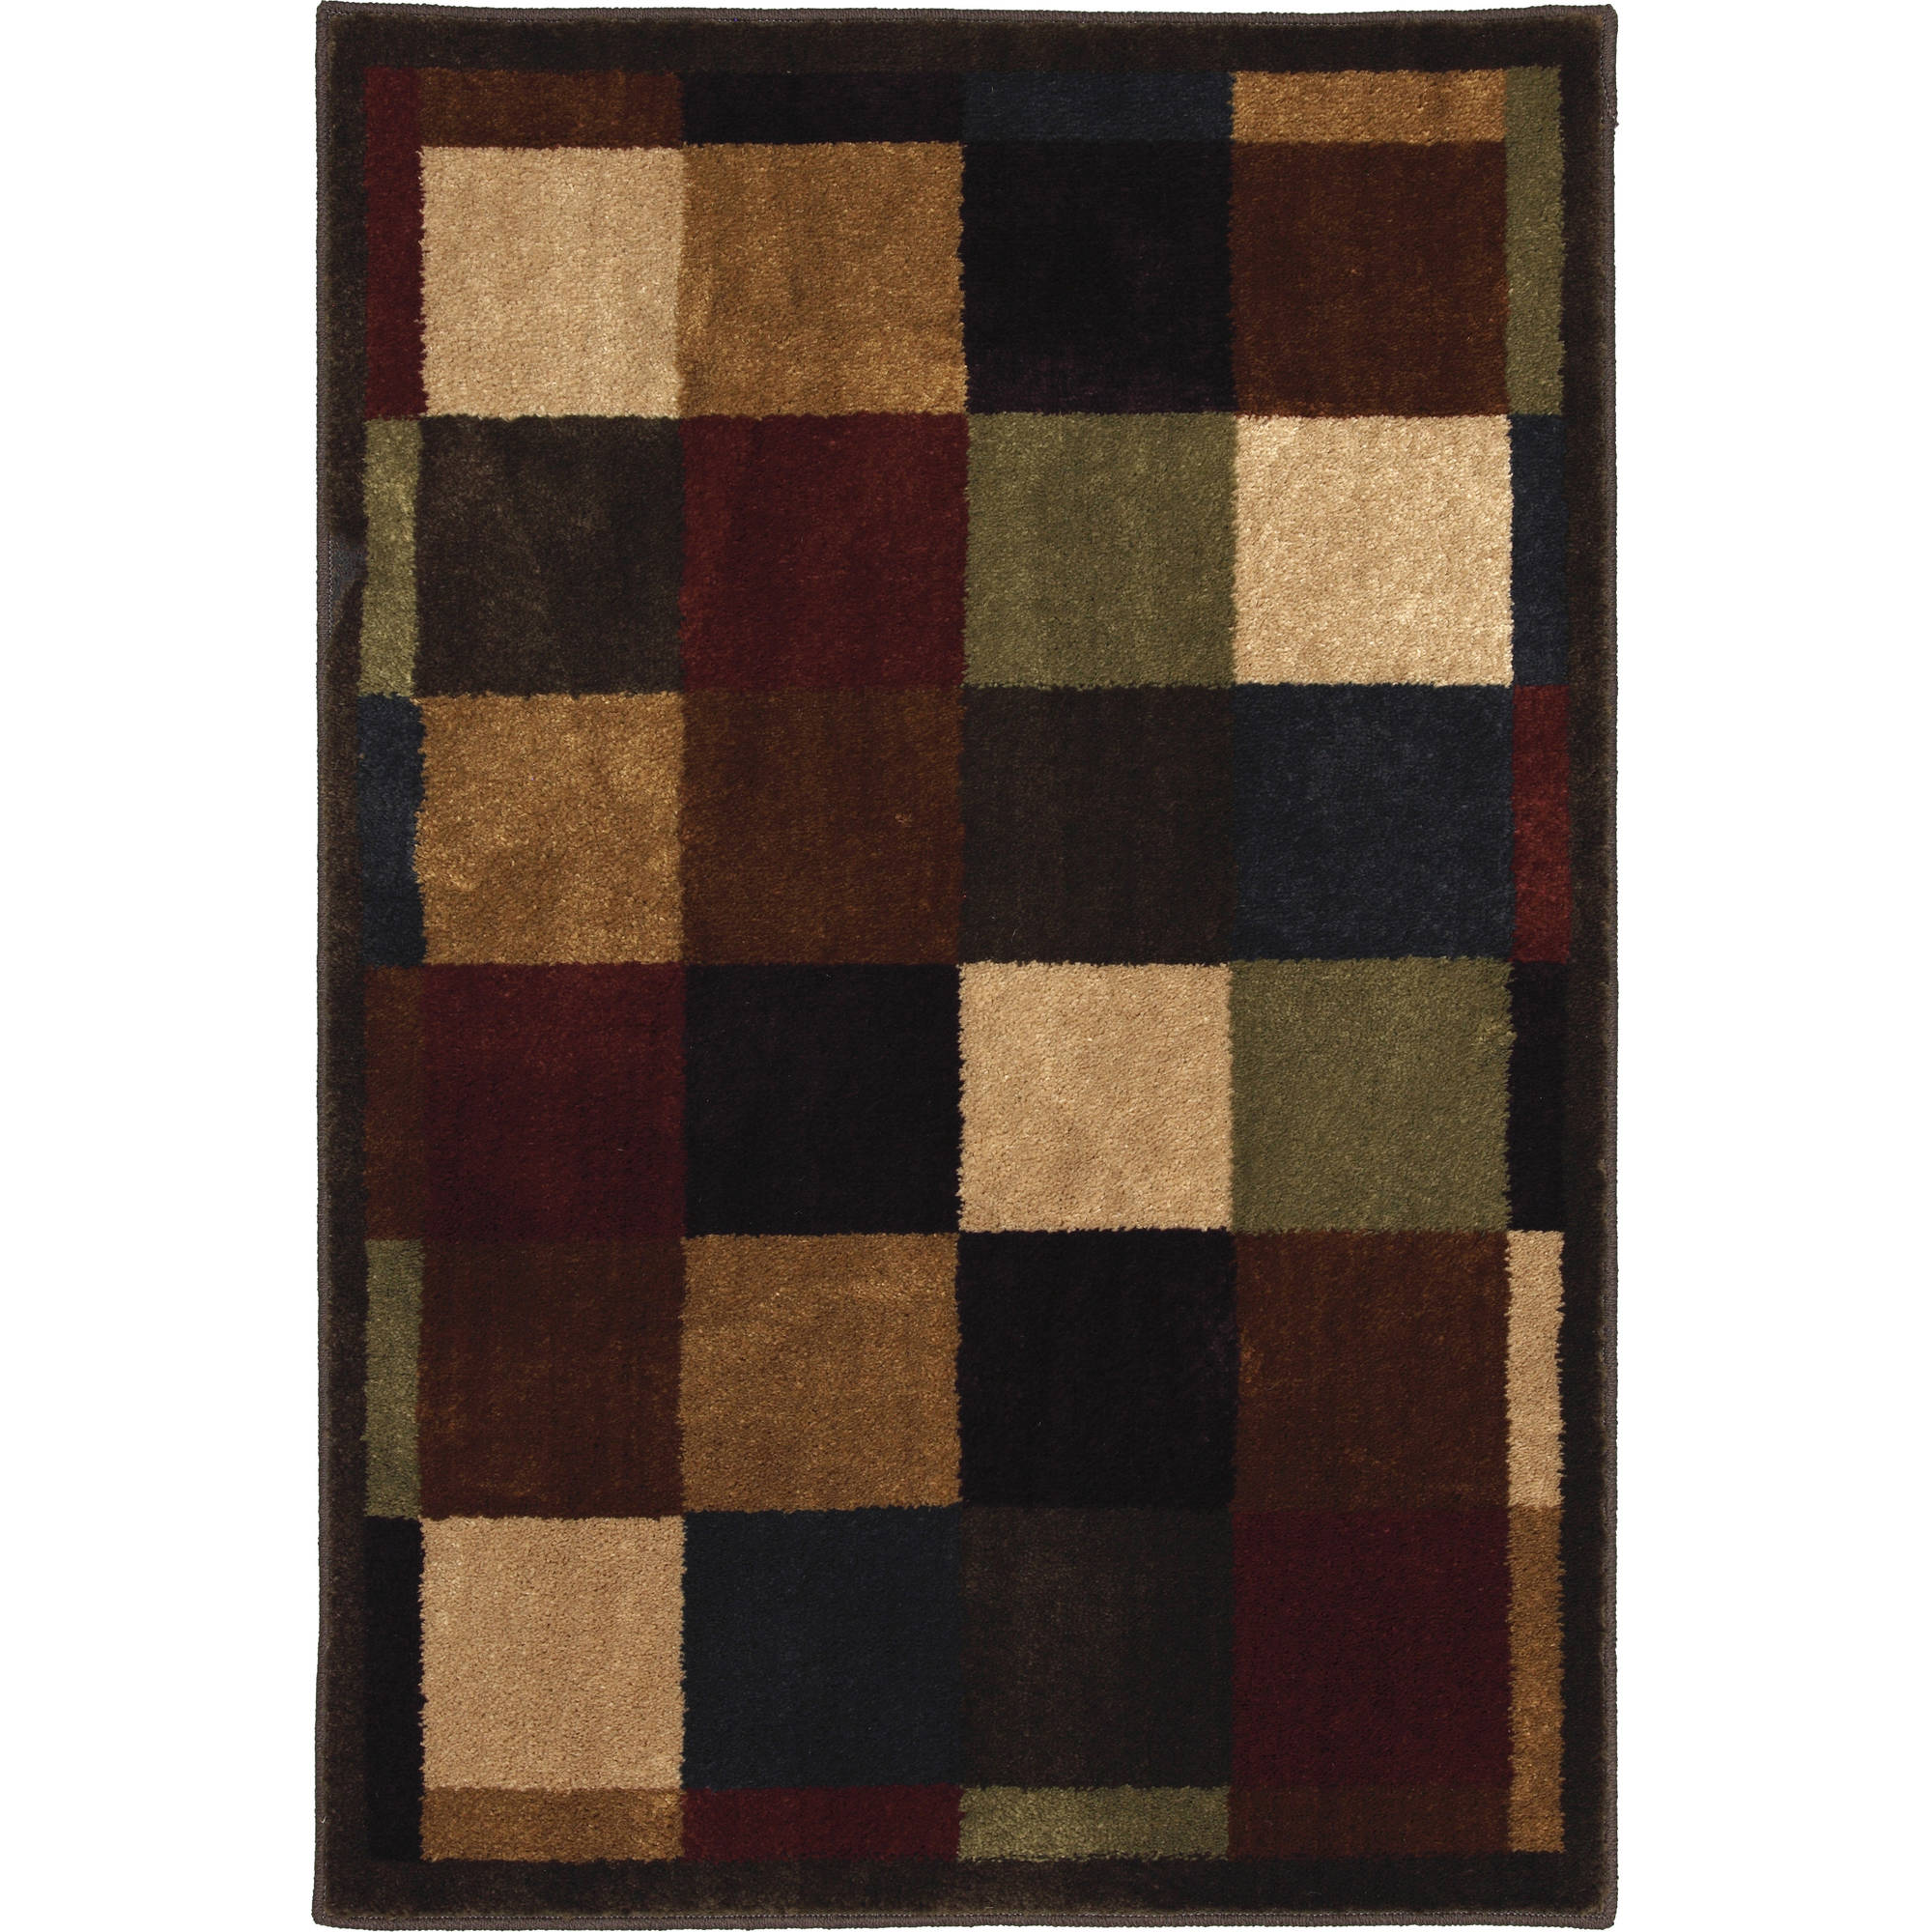 Better Homes and Gardens Bartley Area Rug Available In Multiple Sizes by Generic